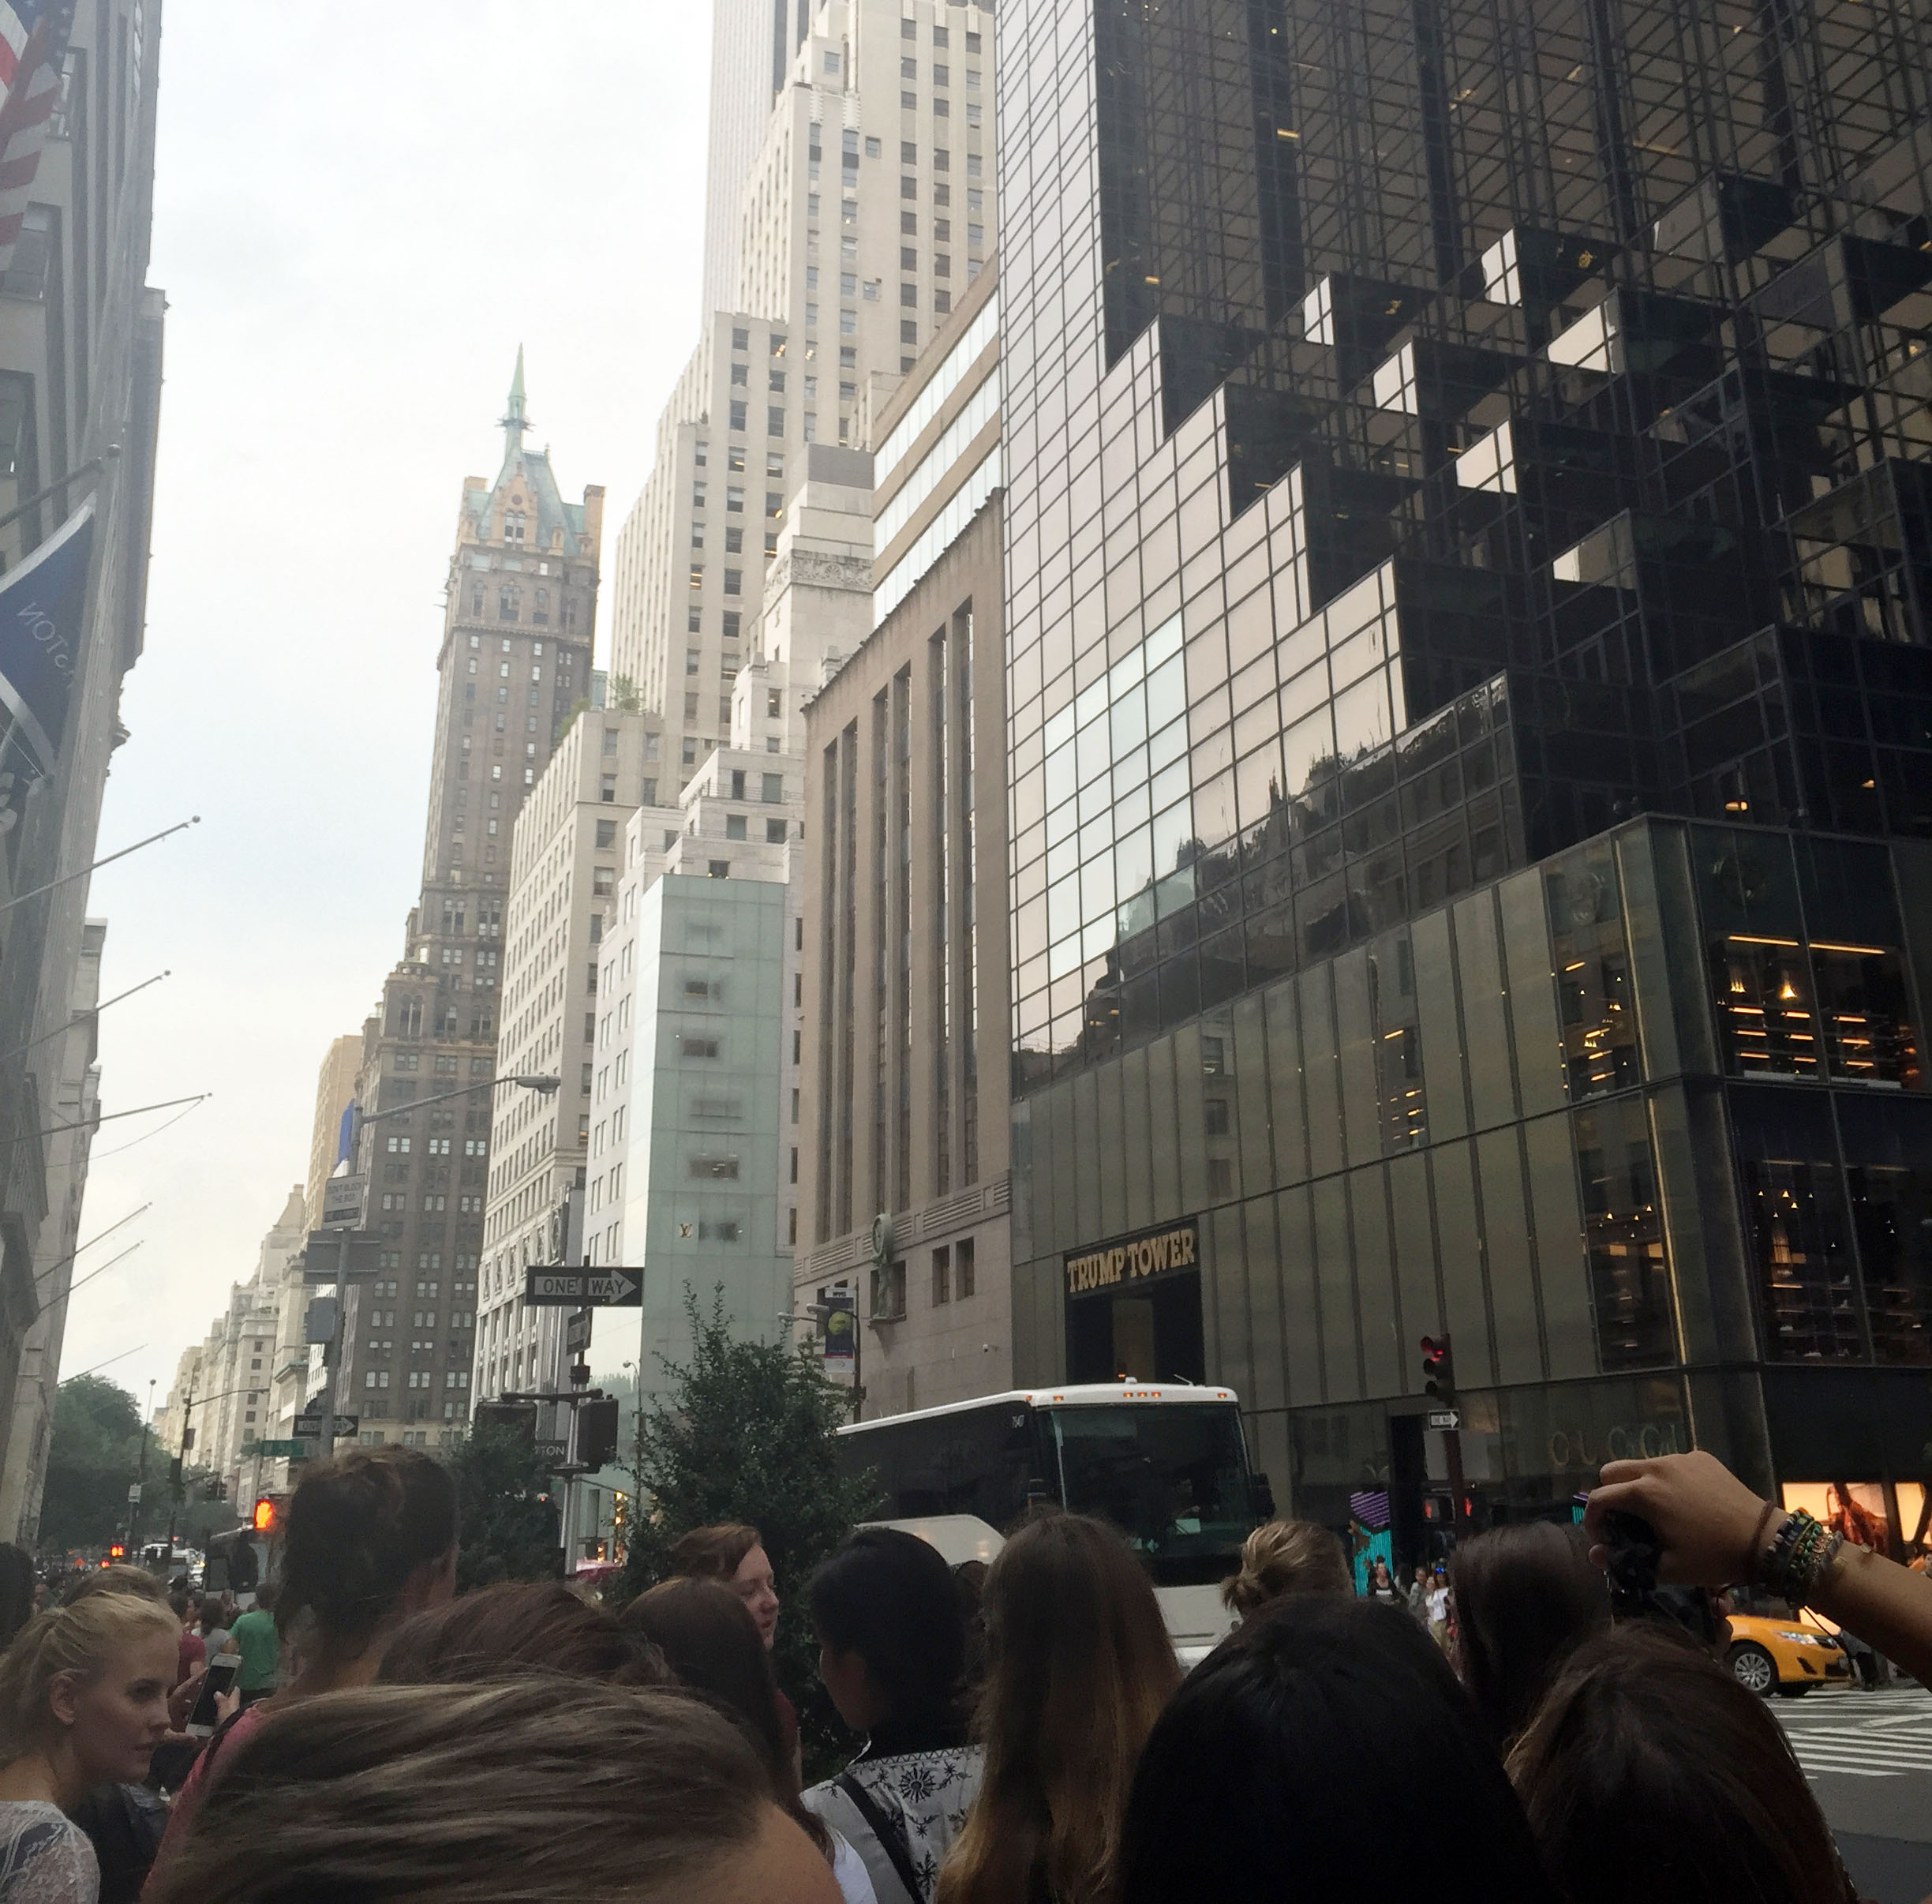 marveling at buildings on 5th Avenue